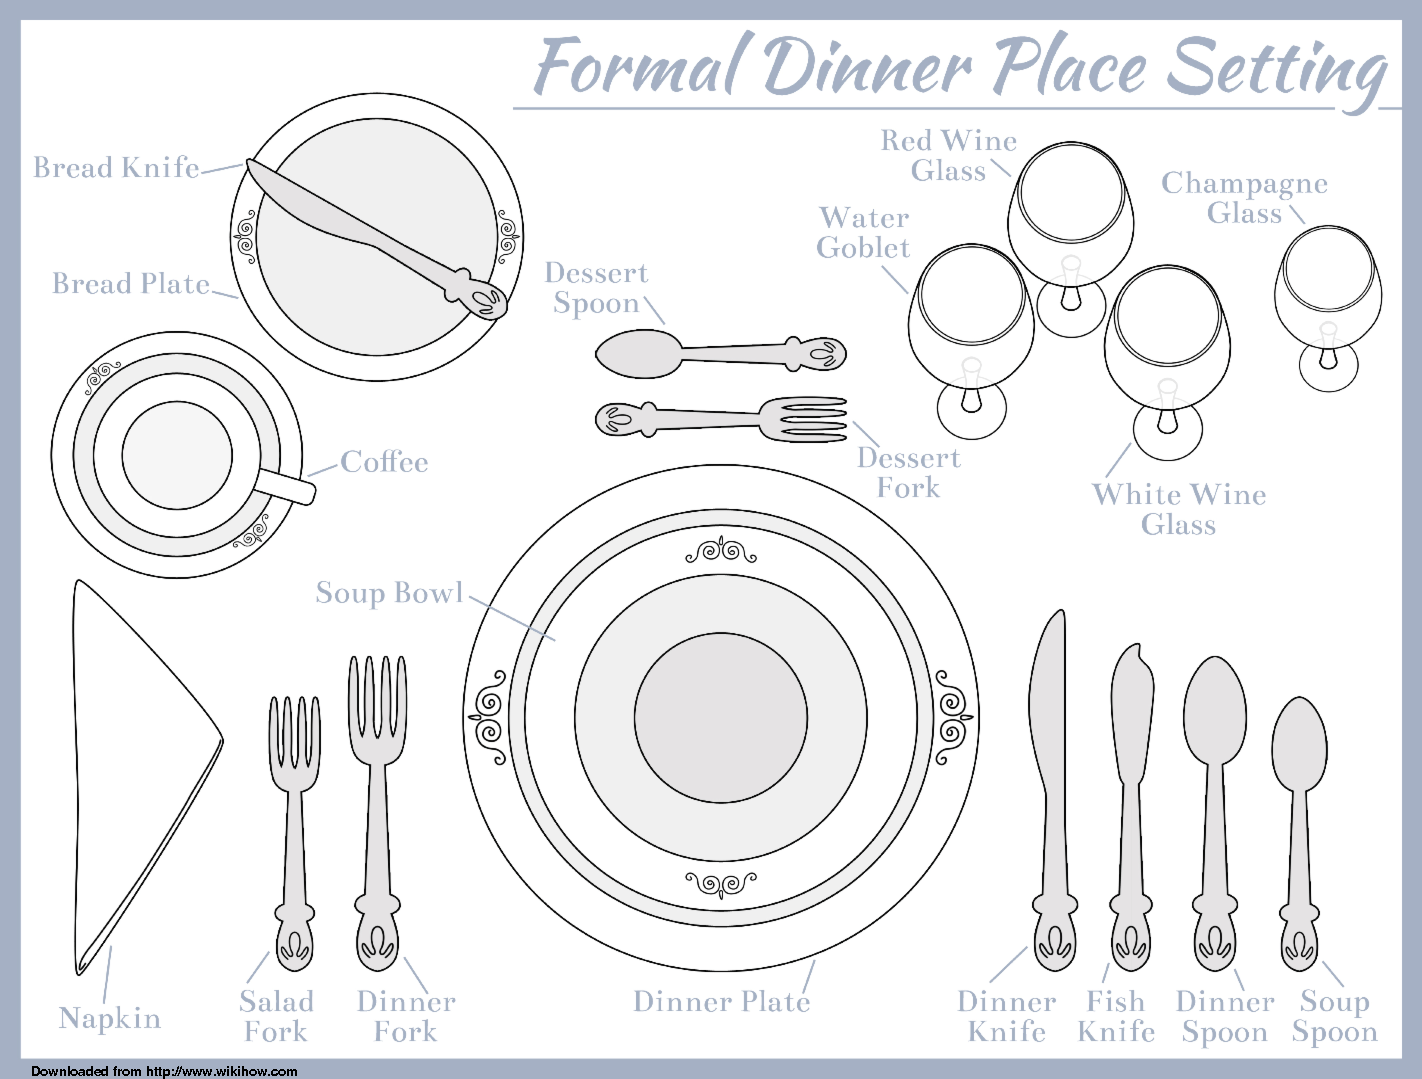 Place Setting Template for Seven-course meal  sc 1 st  Pinterest : table place settings template - pezcame.com